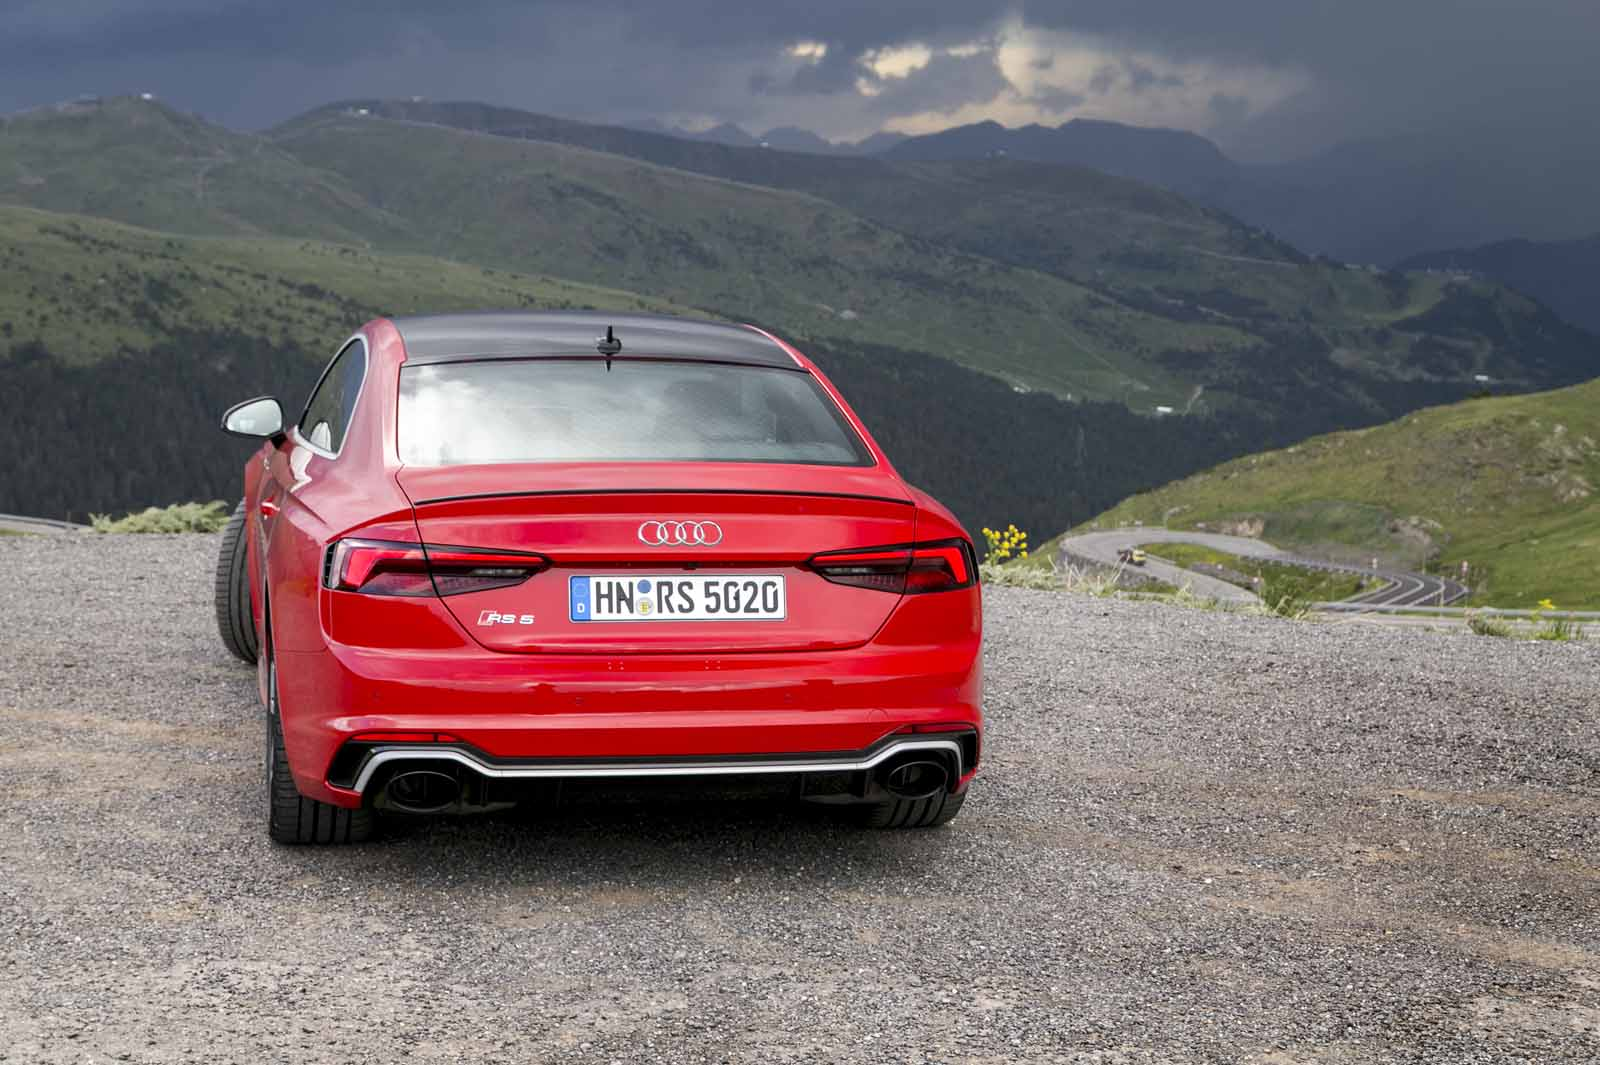 2018 audi rs 5 review wilson 007